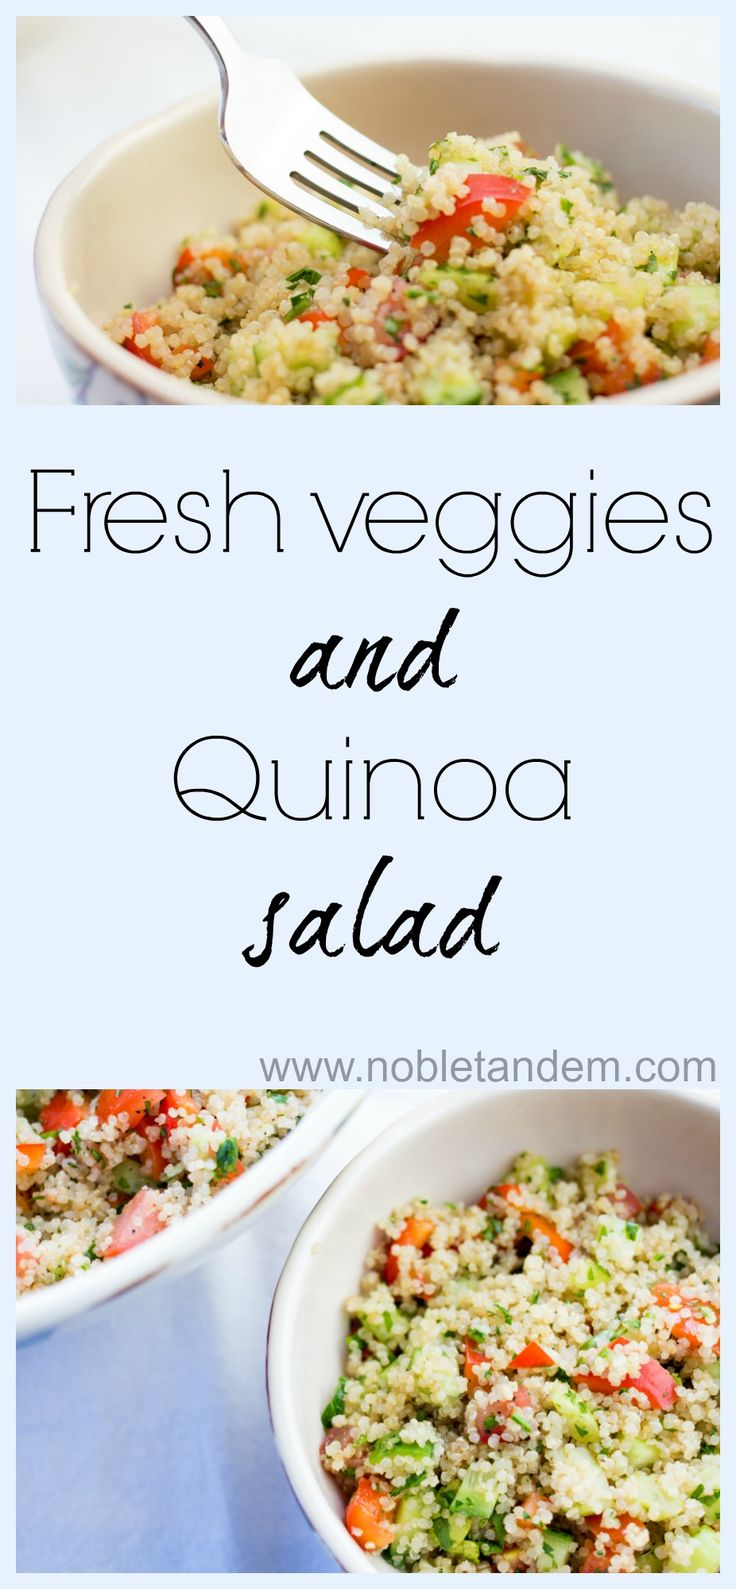 This fresh veggies and quinoa salad is a quick, easy, delicious and good for you. http://www.nobletandem.com/recipe/fresh-veggies-quinoa-salad-version-anglaise/